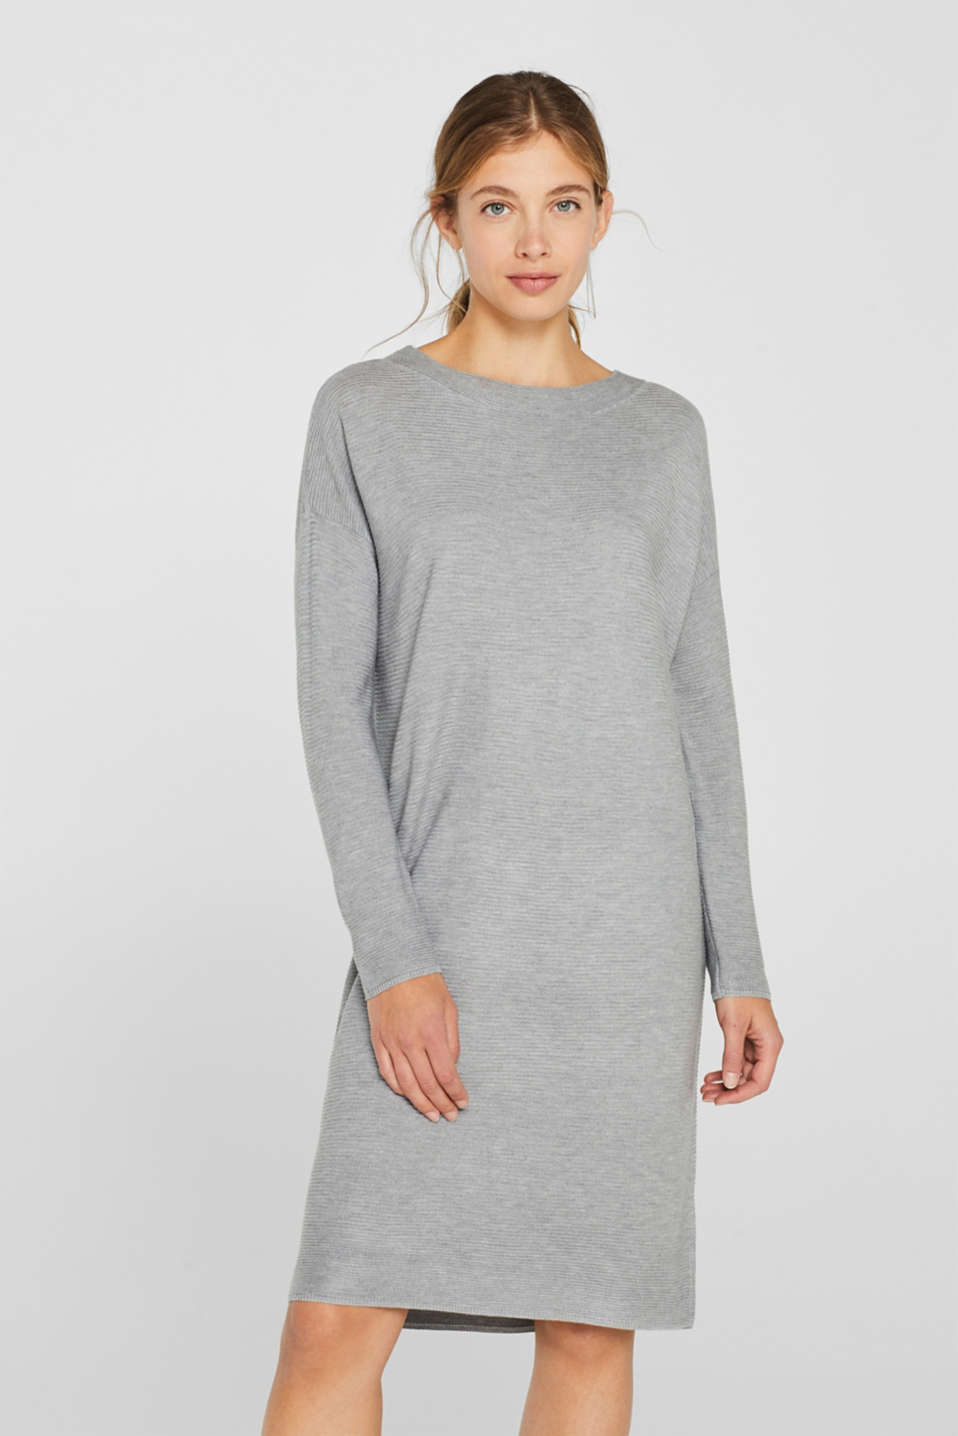 Esprit - Knit dress with a ribbed texture